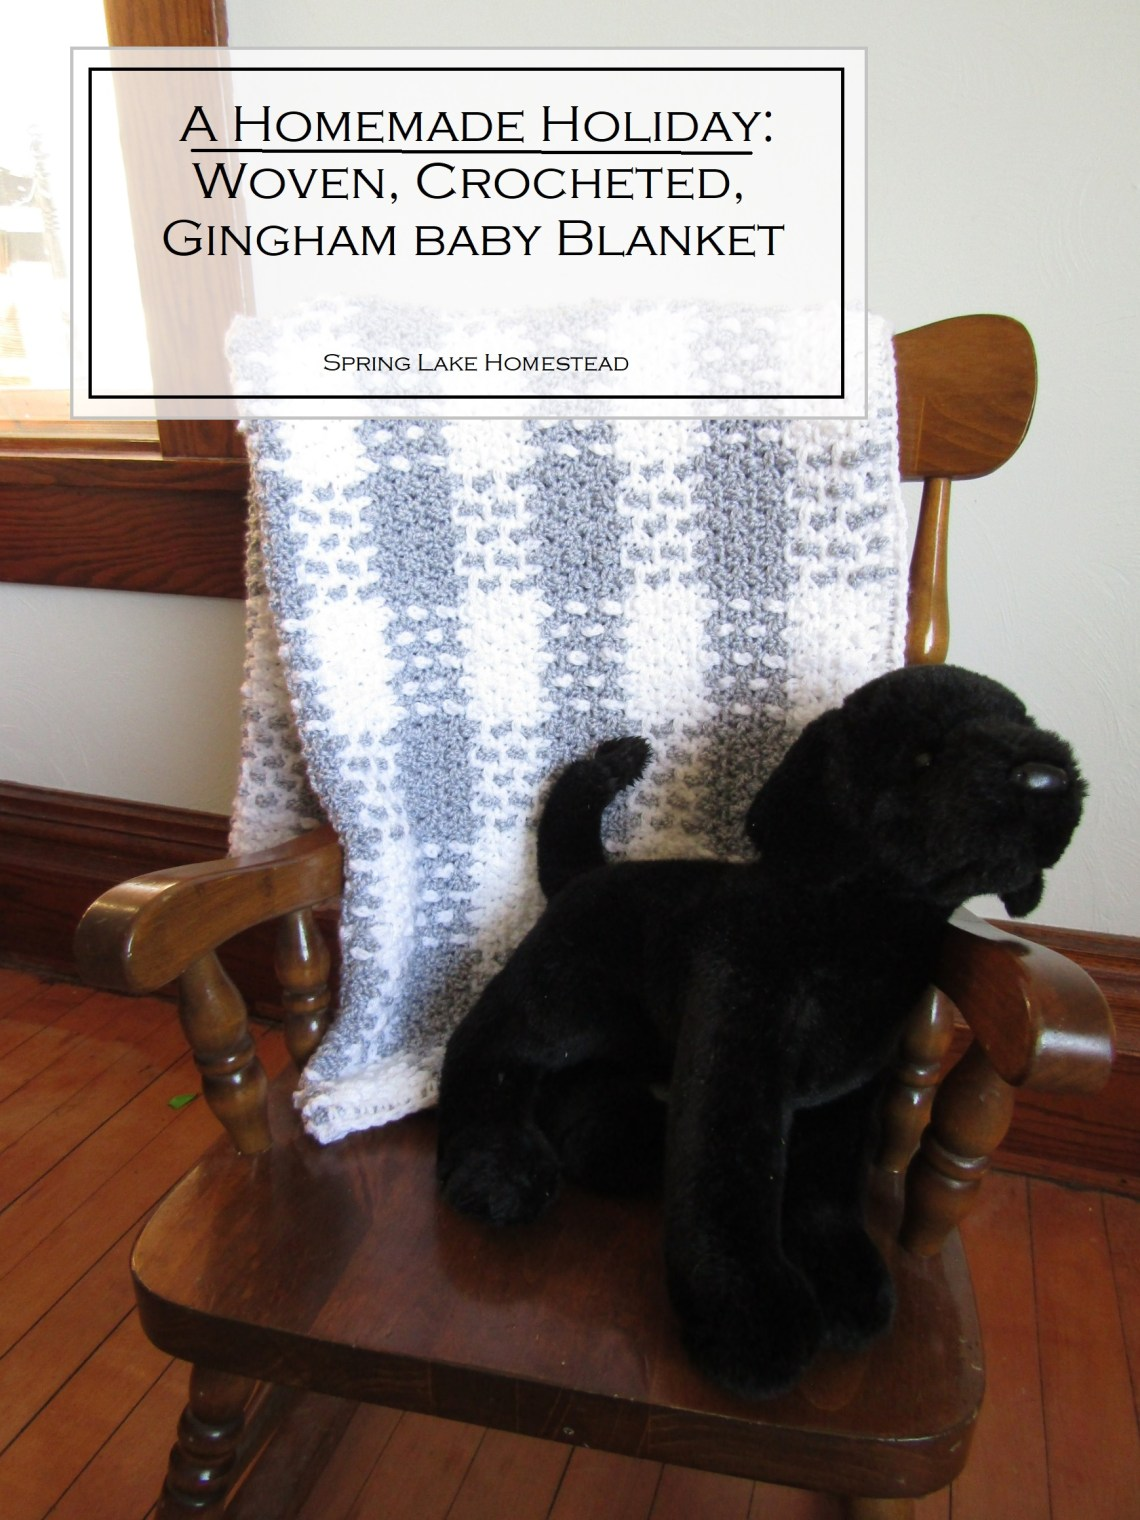 Woven, Crocheted, Gingham Baby Blanket